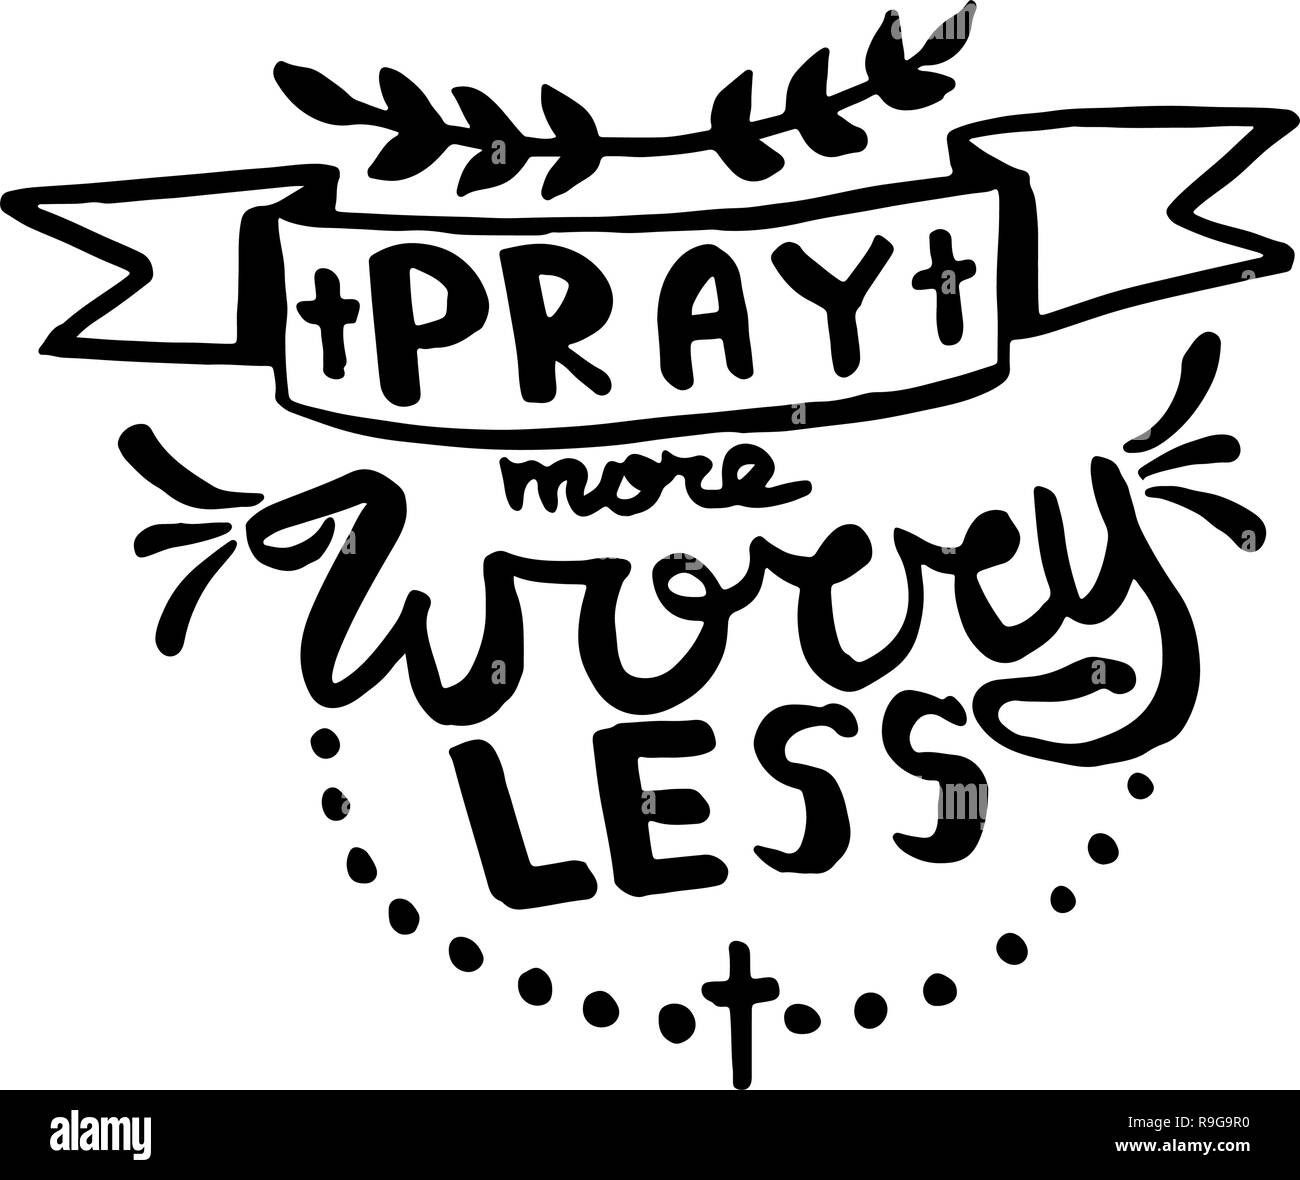 Pray more worry less handwriting monogram calligraphy. Phrase poster graphic desing. Engraved ink art vector. - Stock Image